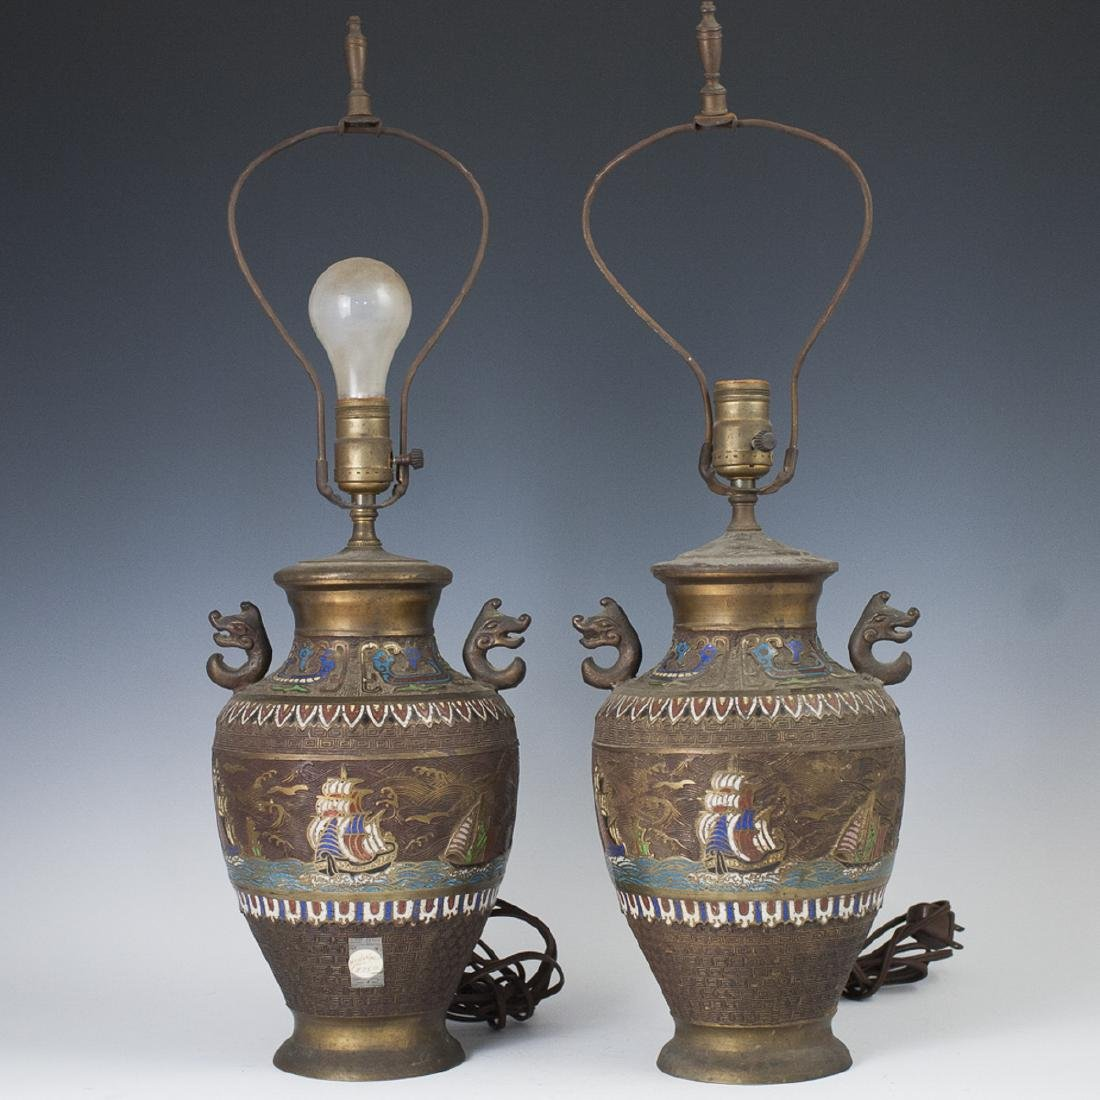 Chinese Bronze Cloisonne Enameled Lamps